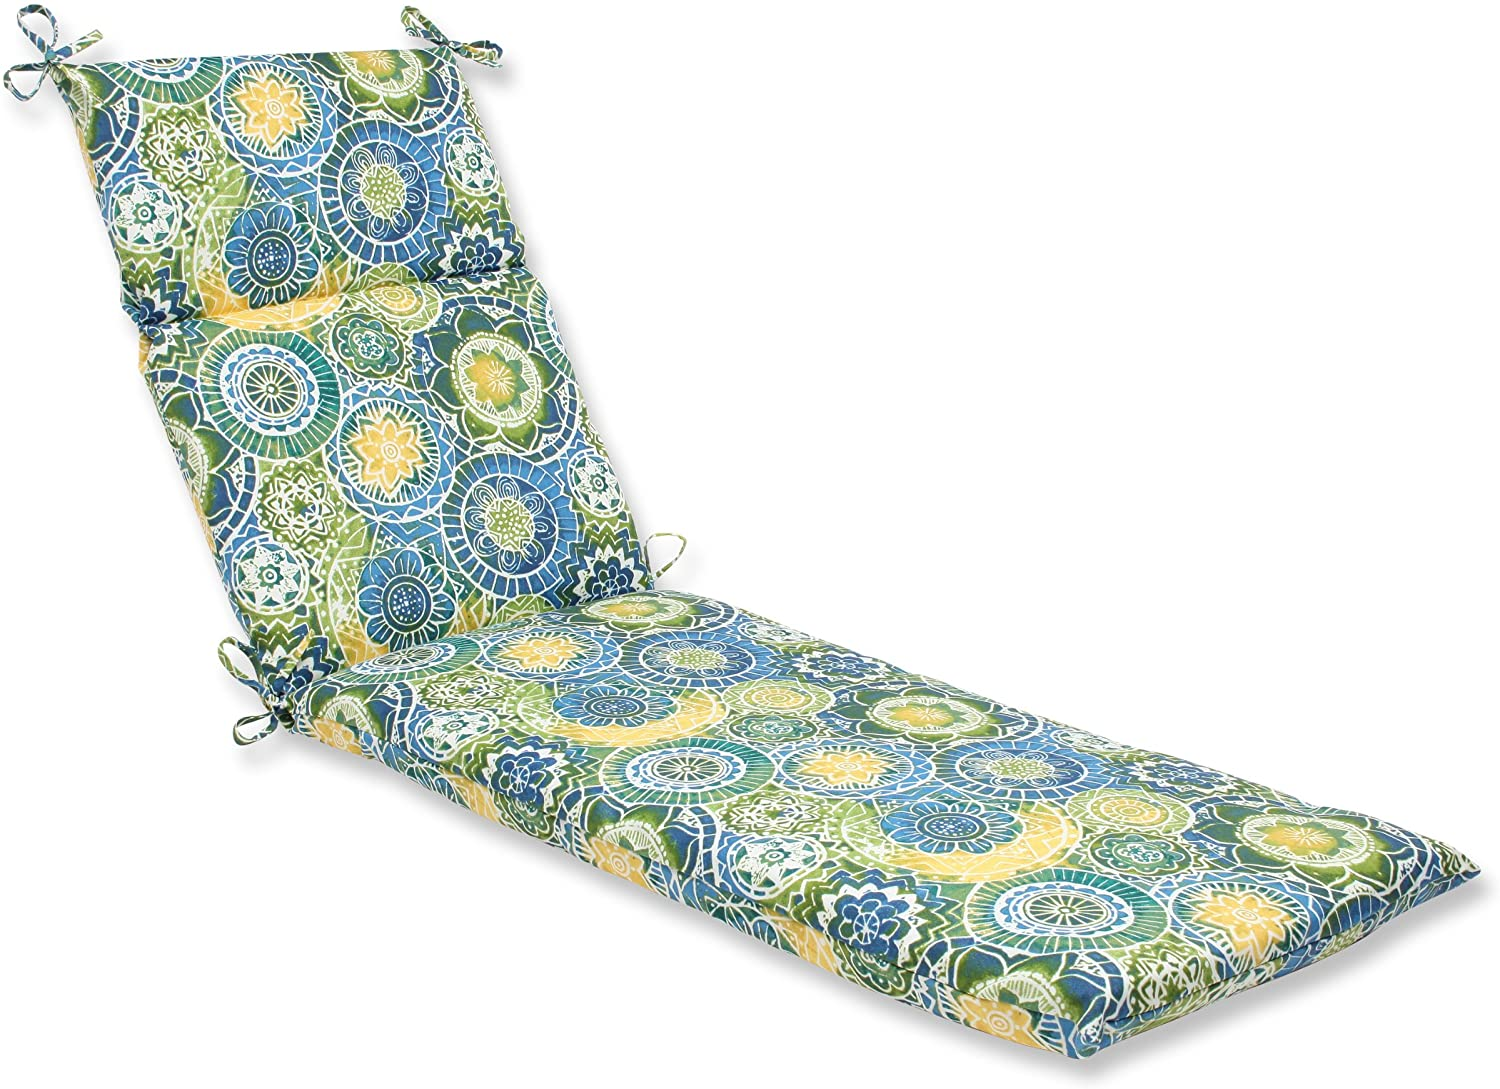 Pillow Perfect Outdoor/Indoor Omnia Lagoon Chaise Lounge Cushion, 72.5 in. L X 21 in. W X 3 in. D, Blue